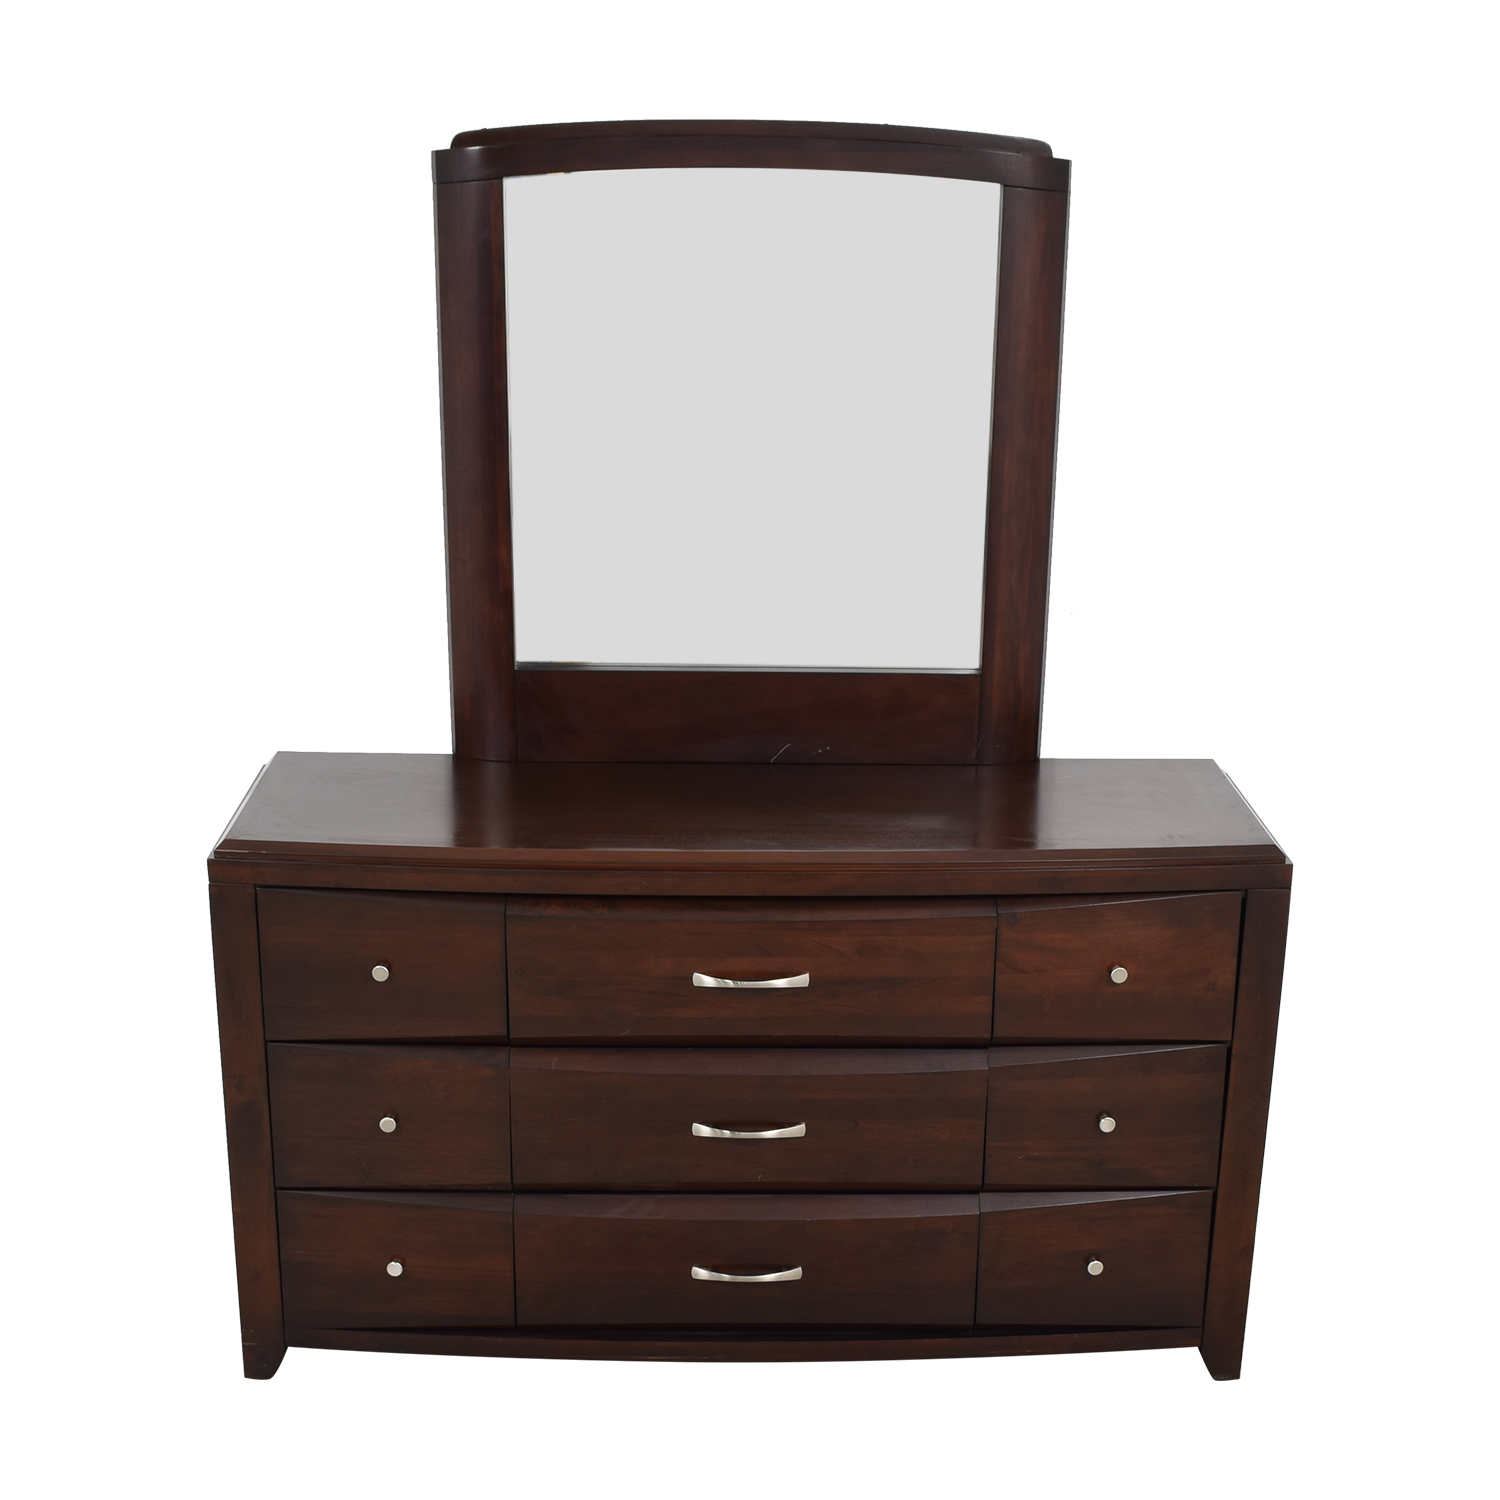 Casana Casana Nine-Drawer Dresser with Mirror used